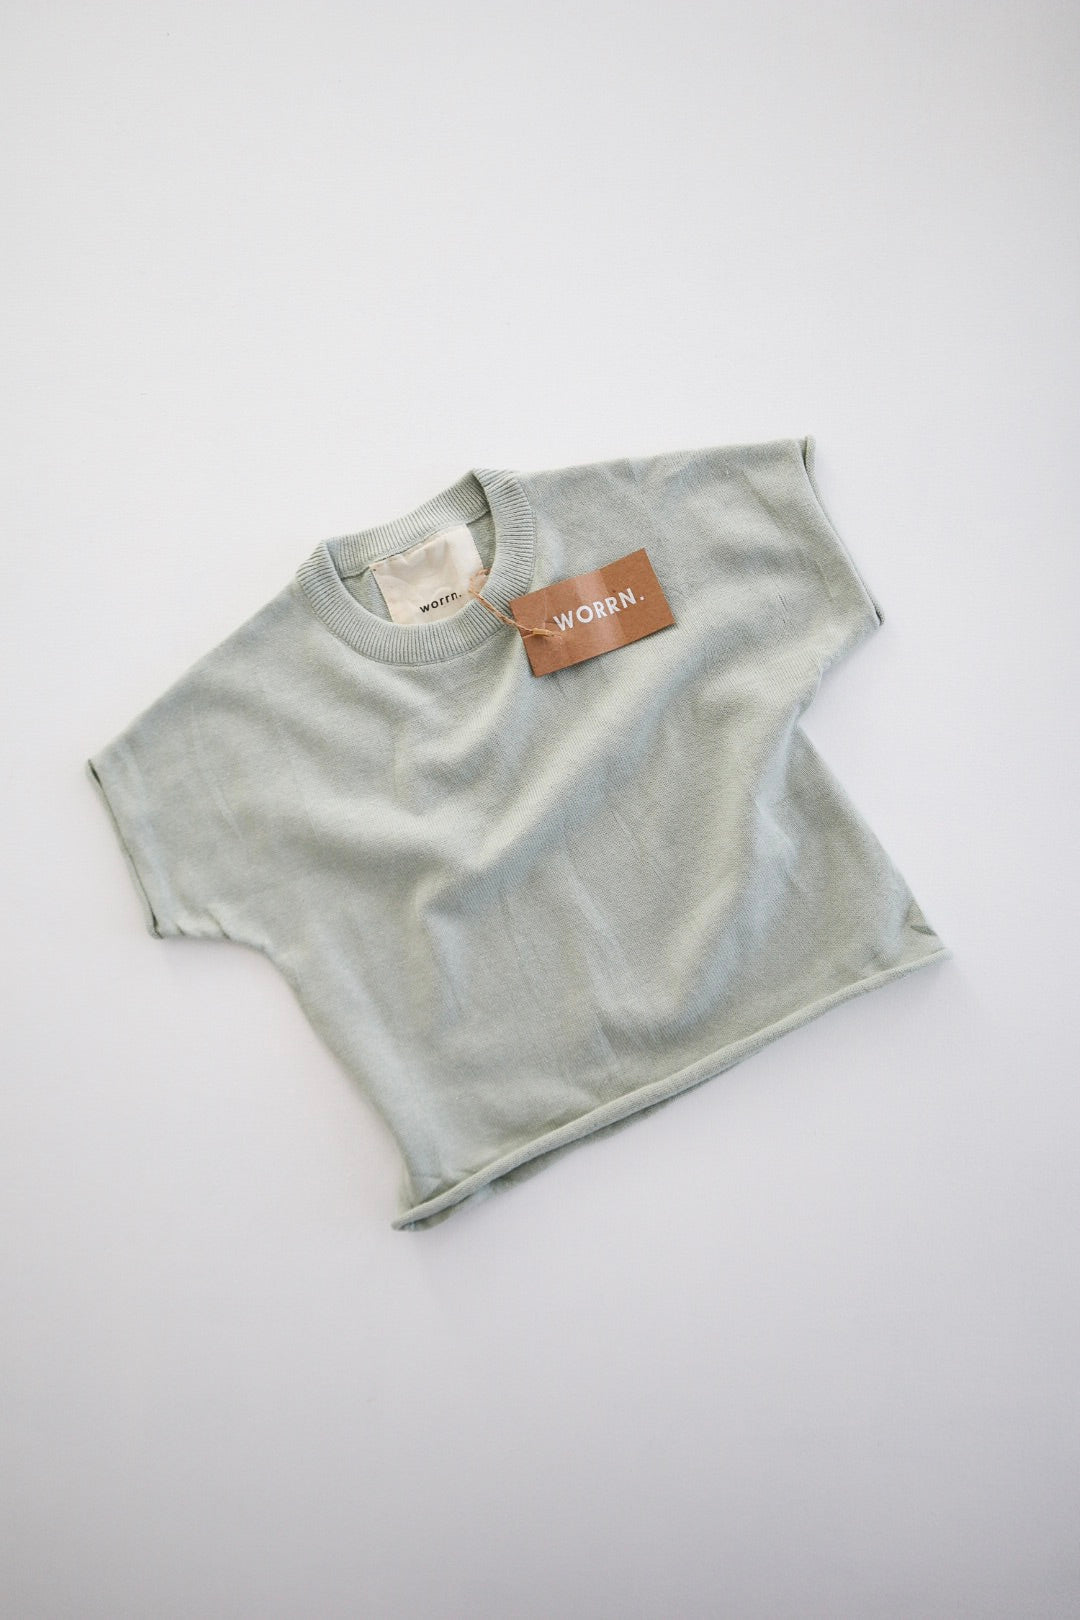 Cotton Knit Basic Tee- Mint